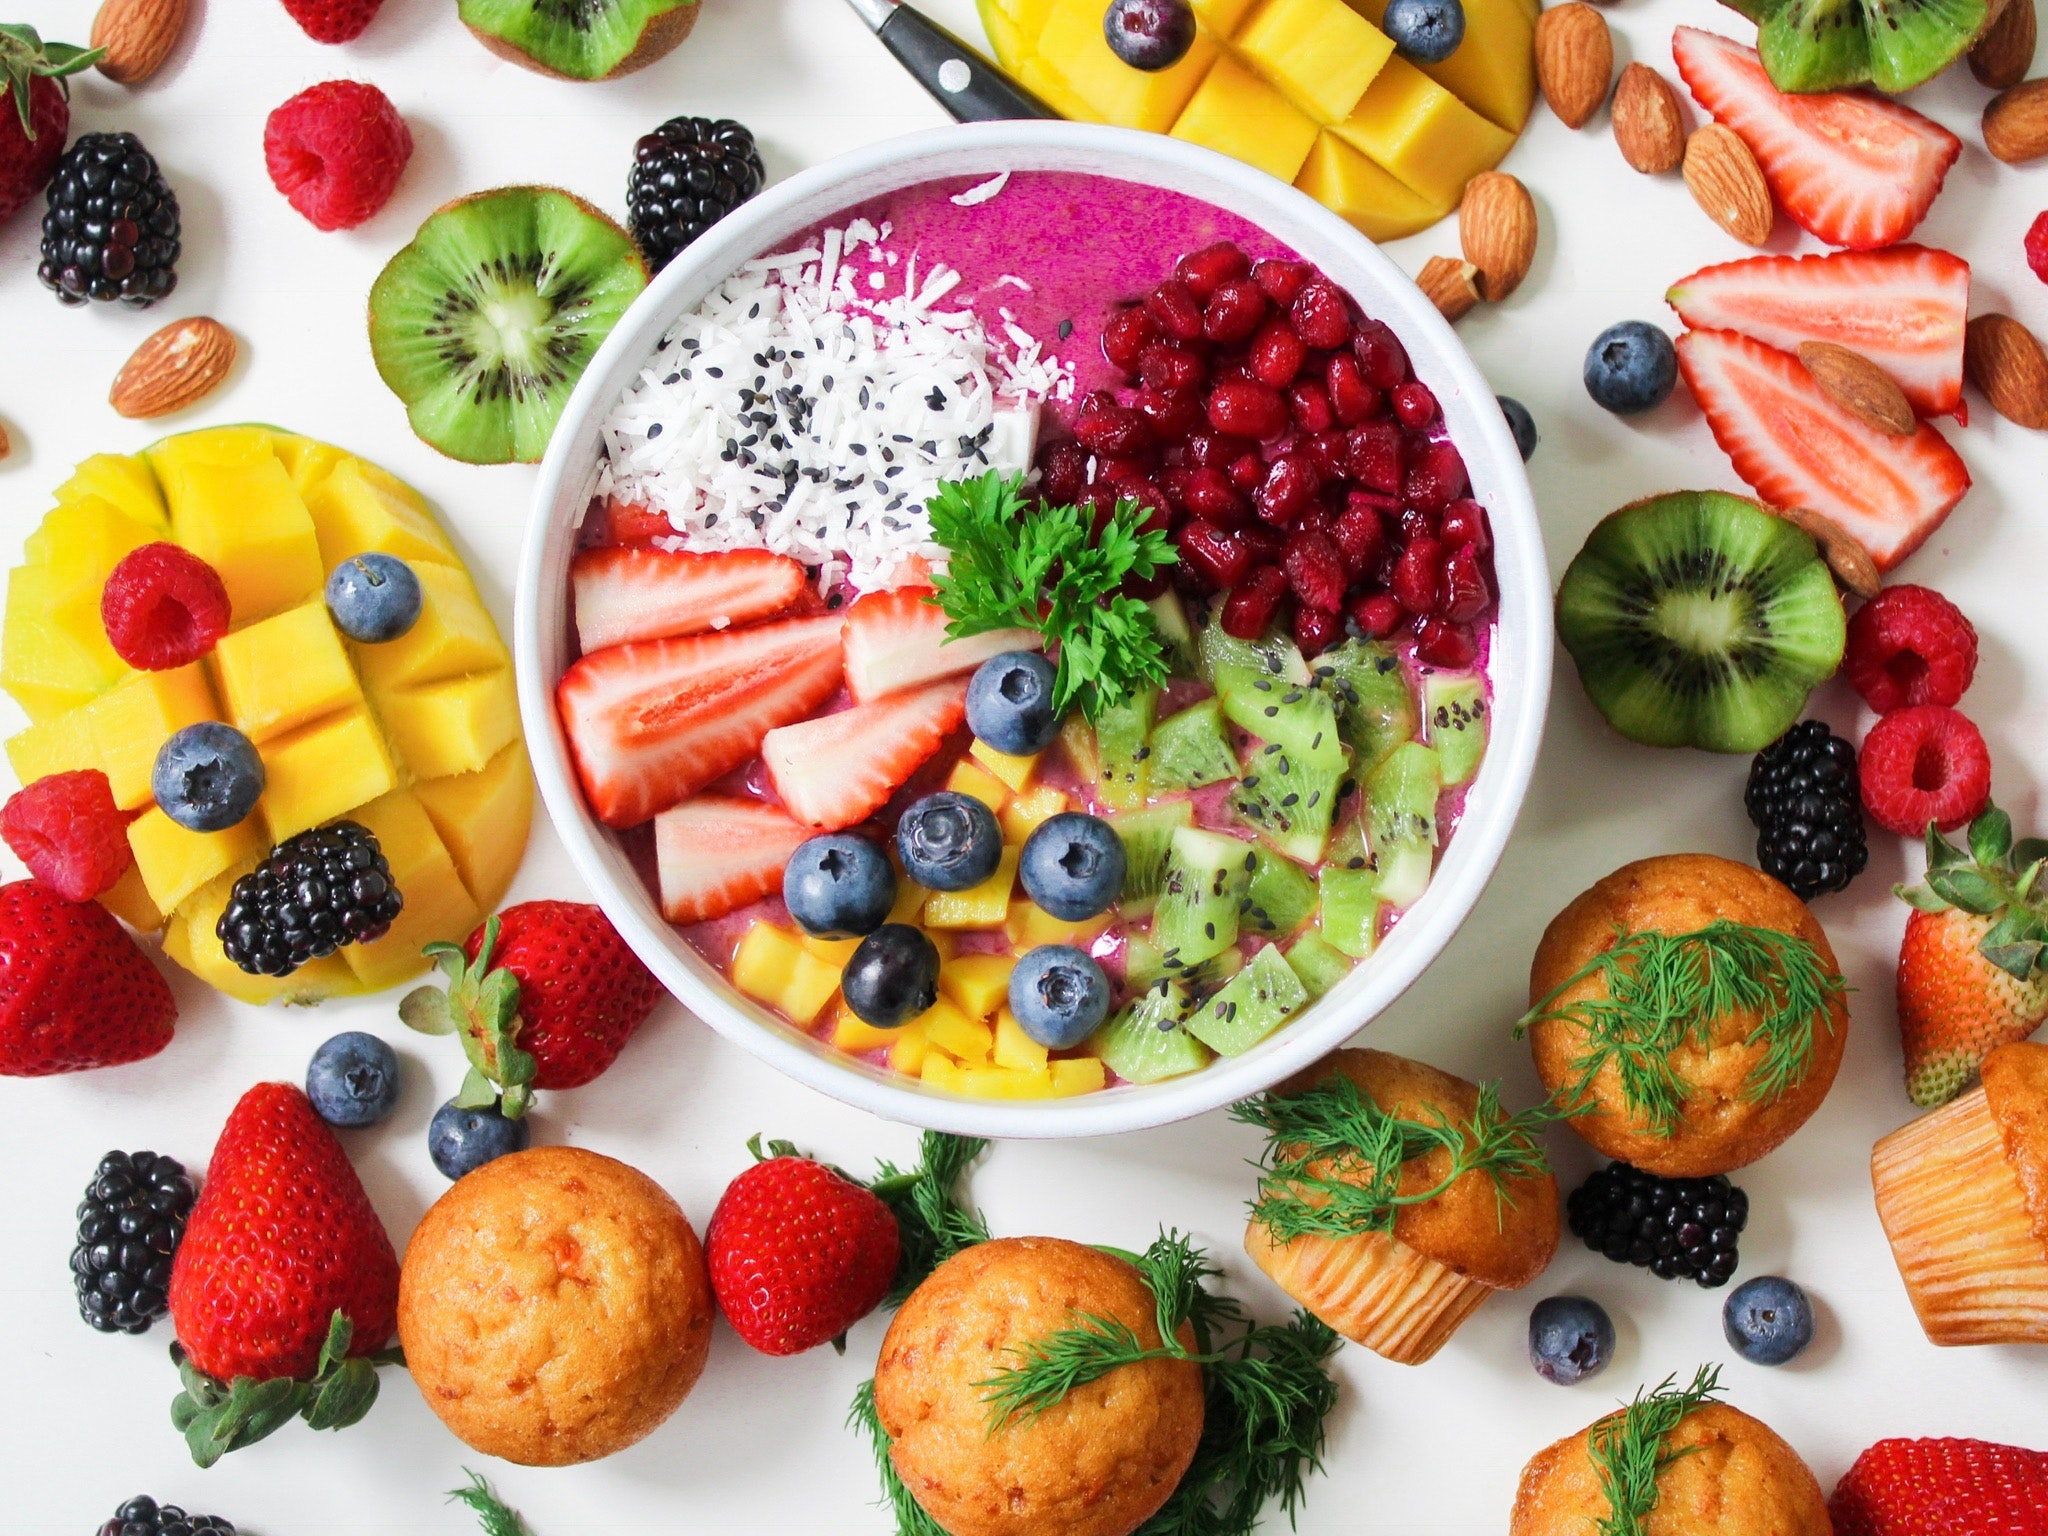 32 Healthy and Energizing Snacks to Help You Get Through the Day